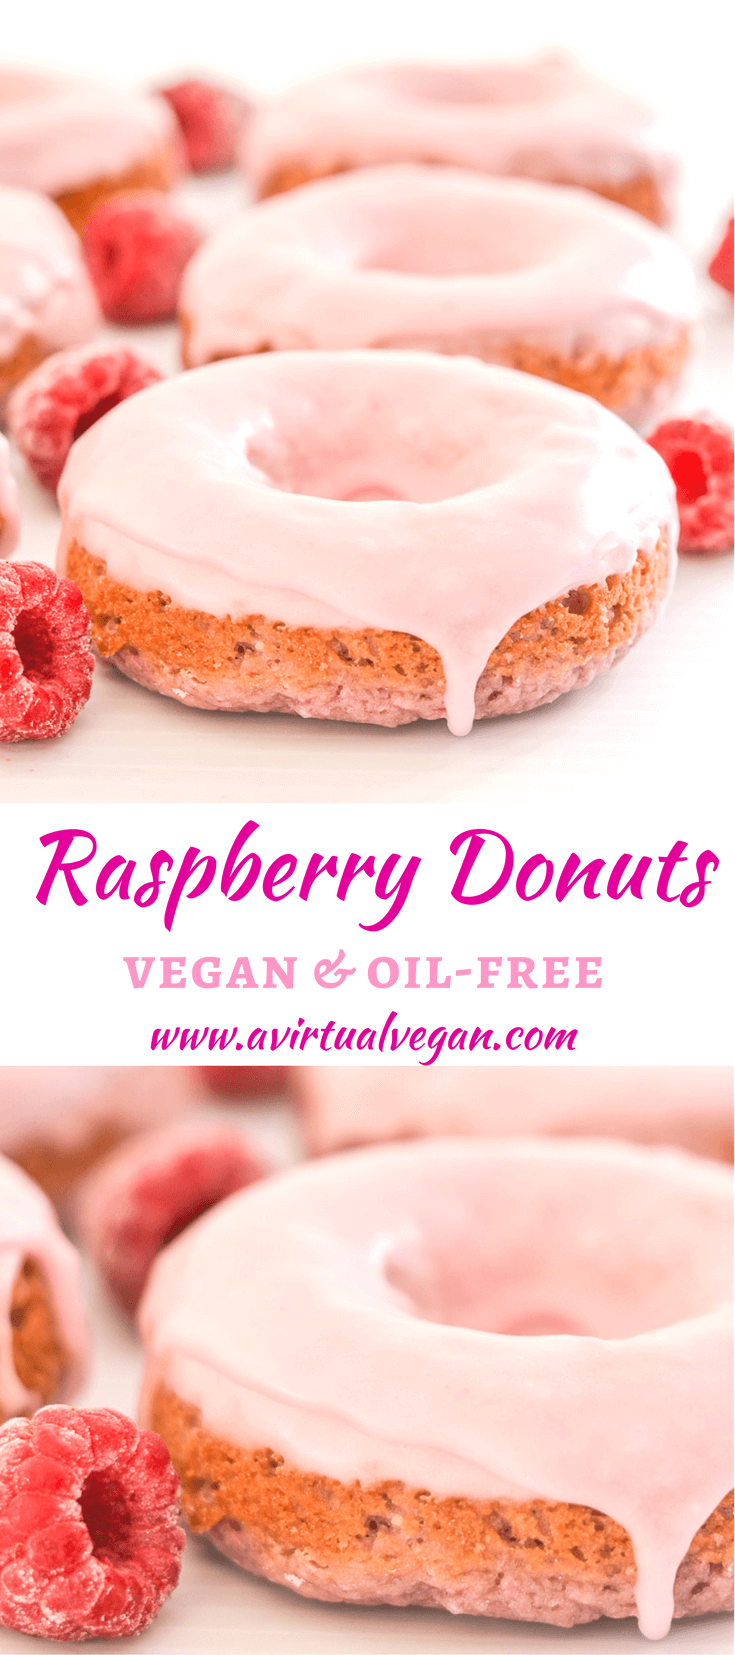 Soft & fluffy oil-free baked Vegan Raspberry Donuts with sweet, pretty in pink glaze. Infused with sweet raspberry flavour & so delicious!